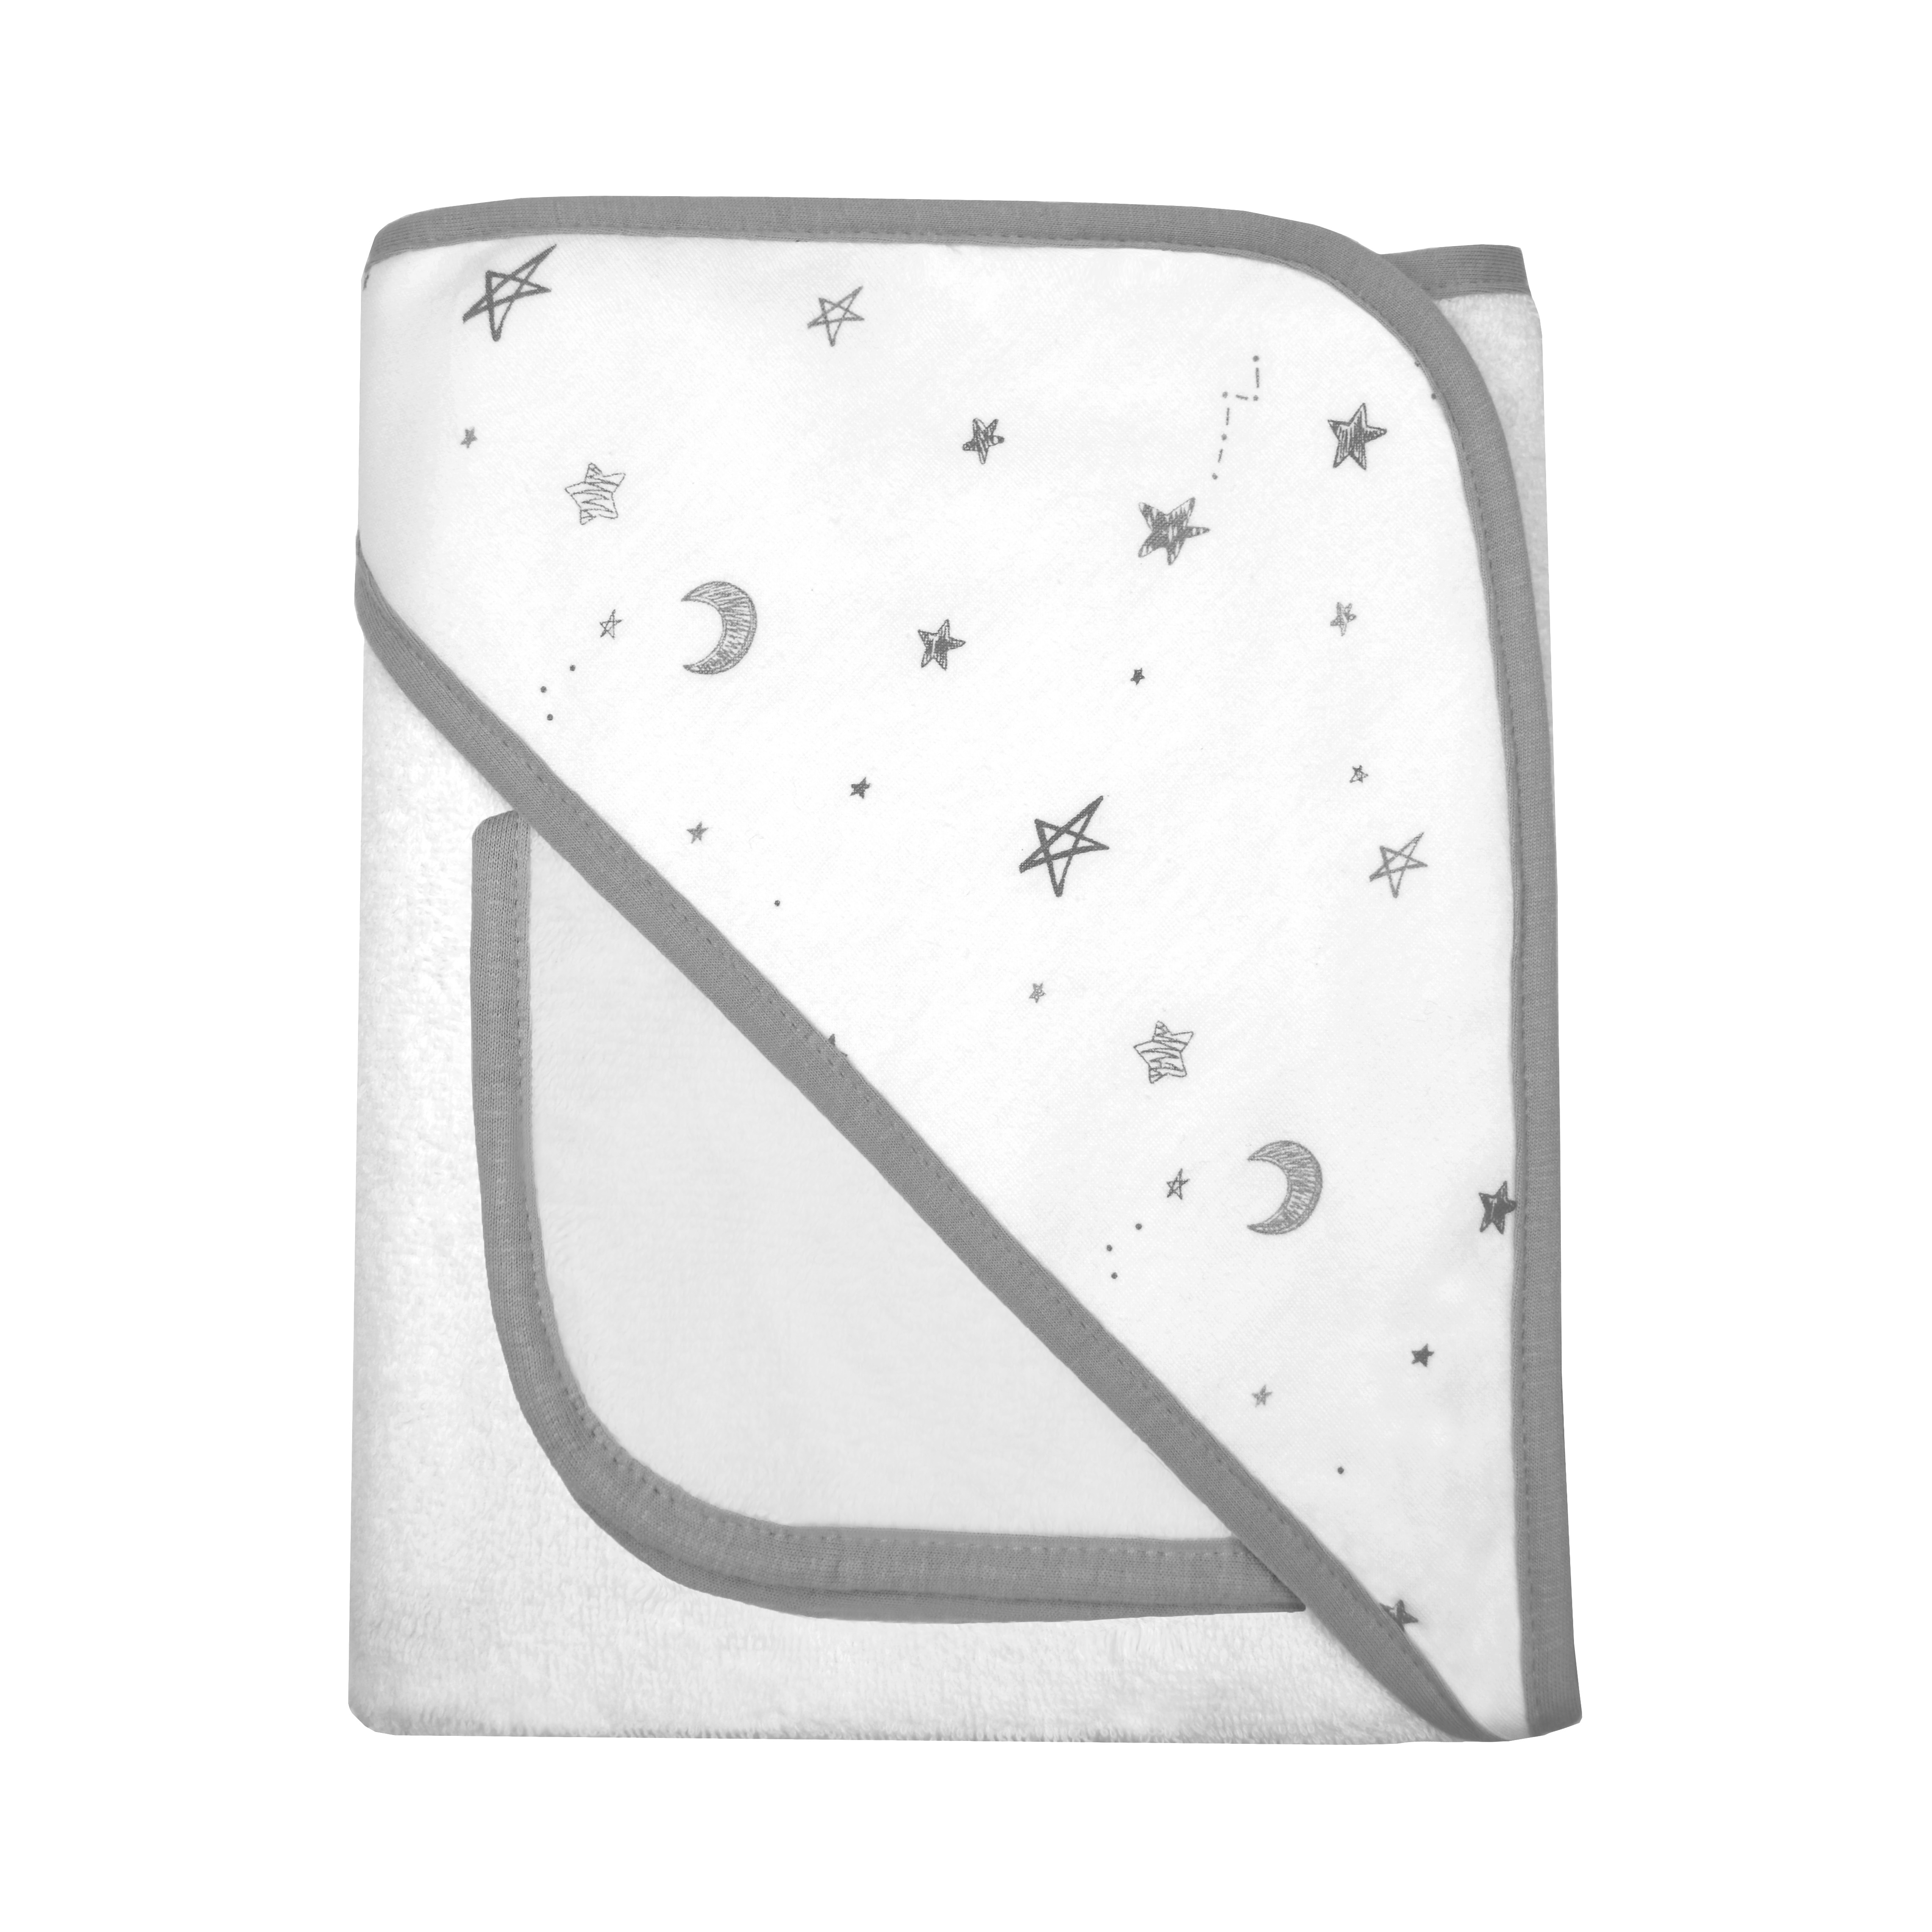 American Baby Company Terry Hooded Towel Set made with Organic Cotton, Grey Stars and Moon